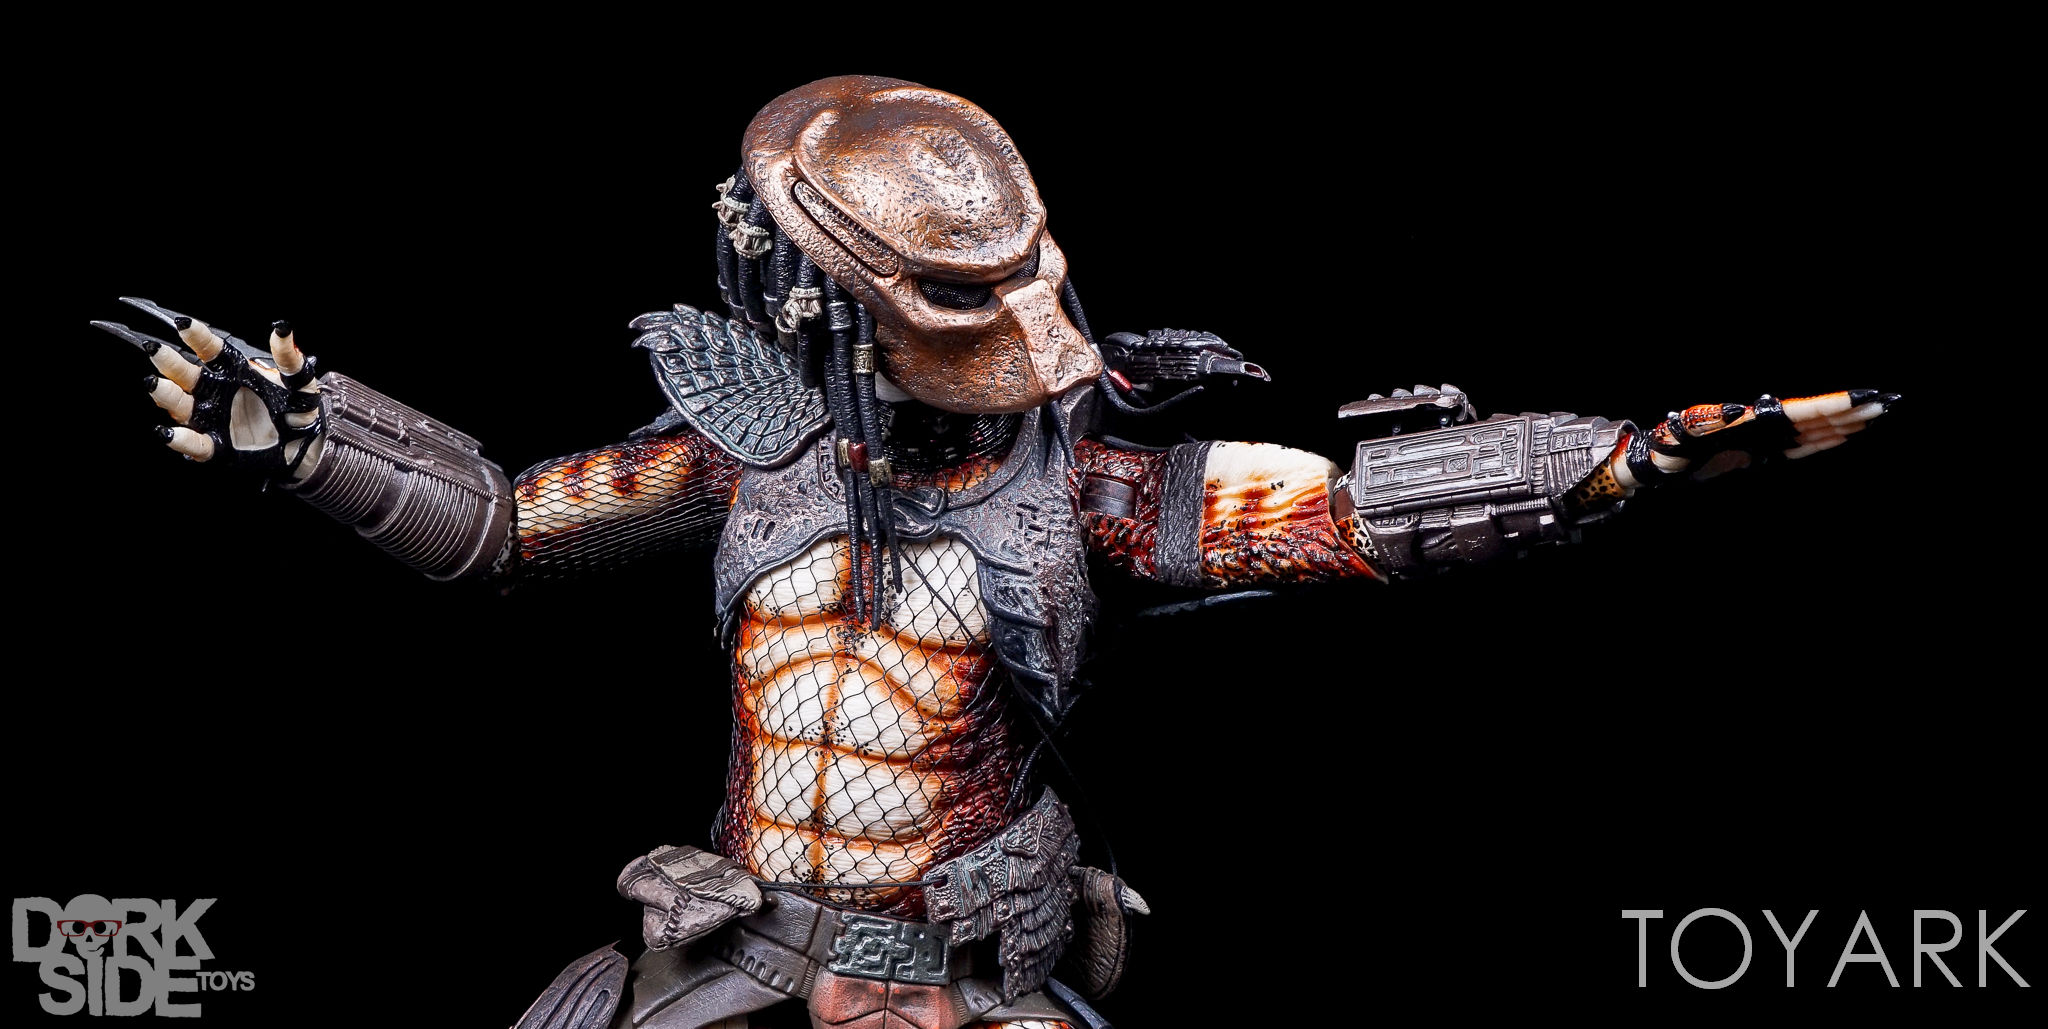 http://news.toyark.com/wp-content/uploads/sites/4/2016/12/NECA-20-Inch-City-Hunter-Predator-049.jpg